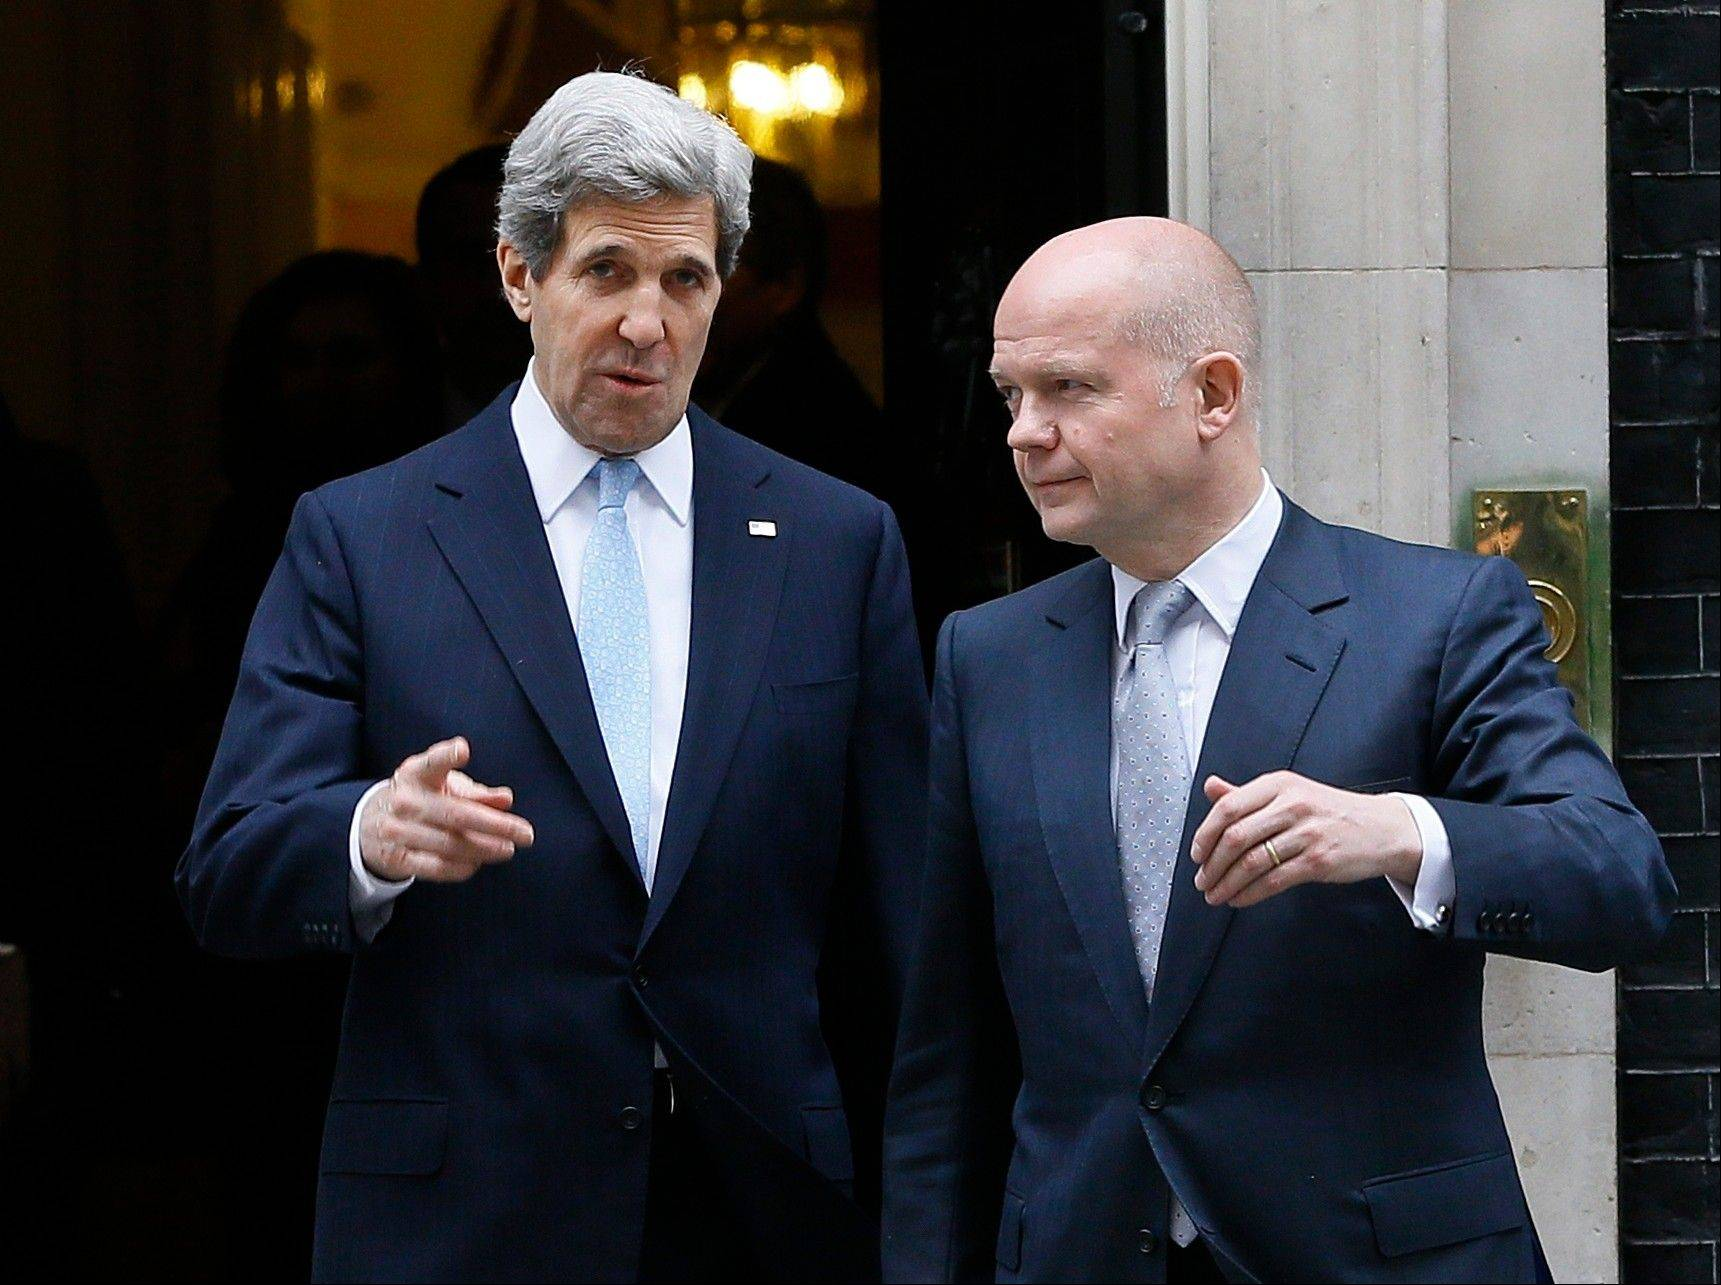 U.S. Secretary of State John Kerry, left, walks with British Foreign Secretary William Hague as they leave Downing Street in London, Monday. Kerry has kicked off his first official overseas trip by meeting with British leaders in London on the first leg of a hectic nine-day dash through Europe and the Middle East.